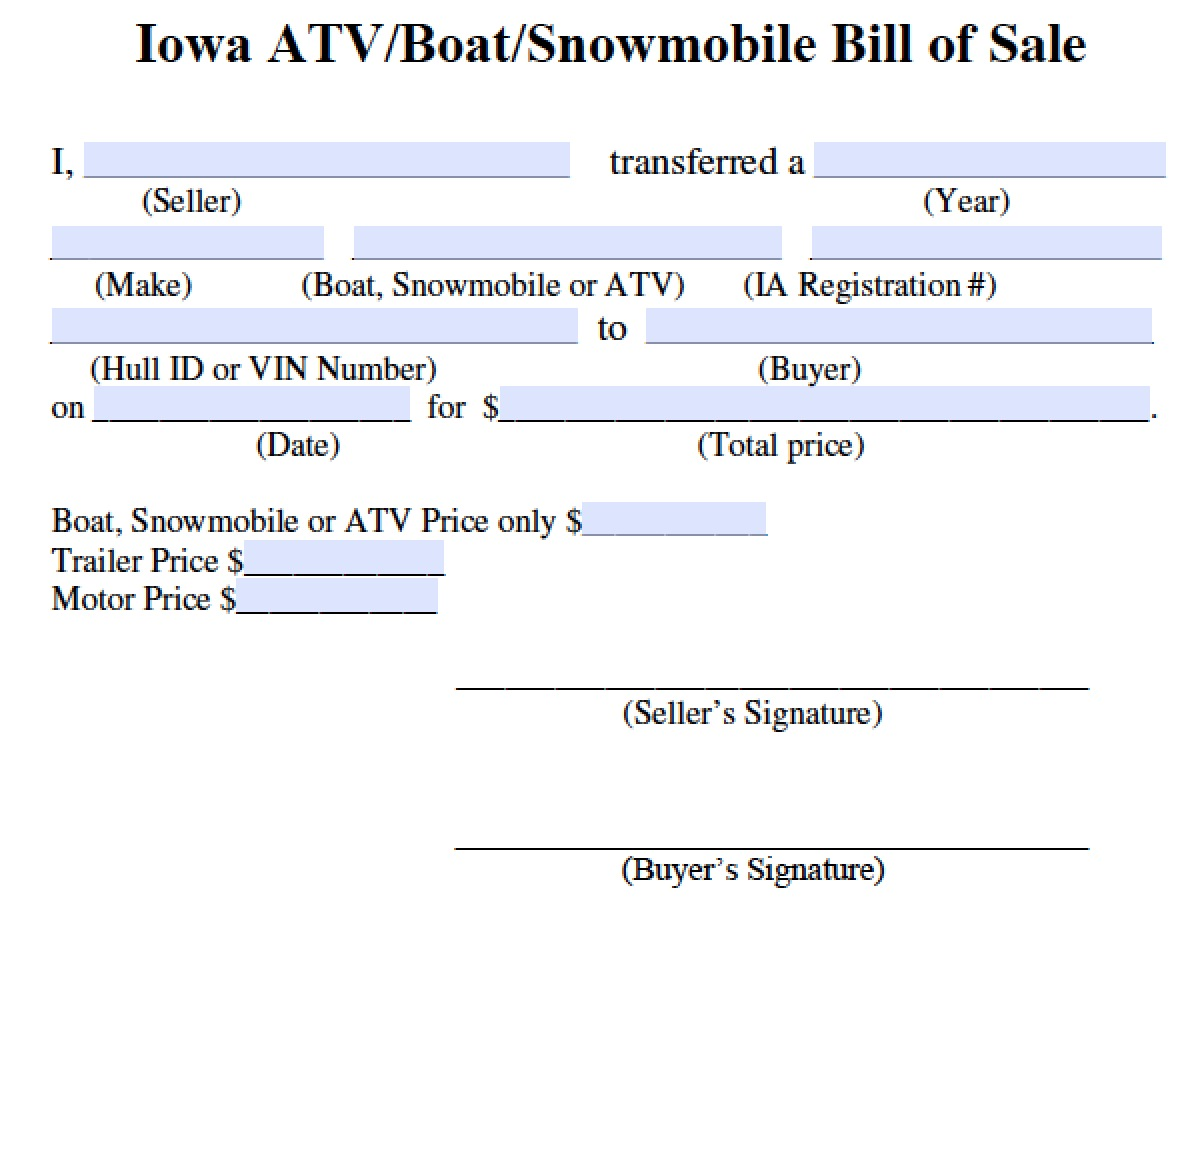 bill of sale iowa Free Iowa Bill of Sale for ATV | Boat | Snowmobile Form | PDF ...